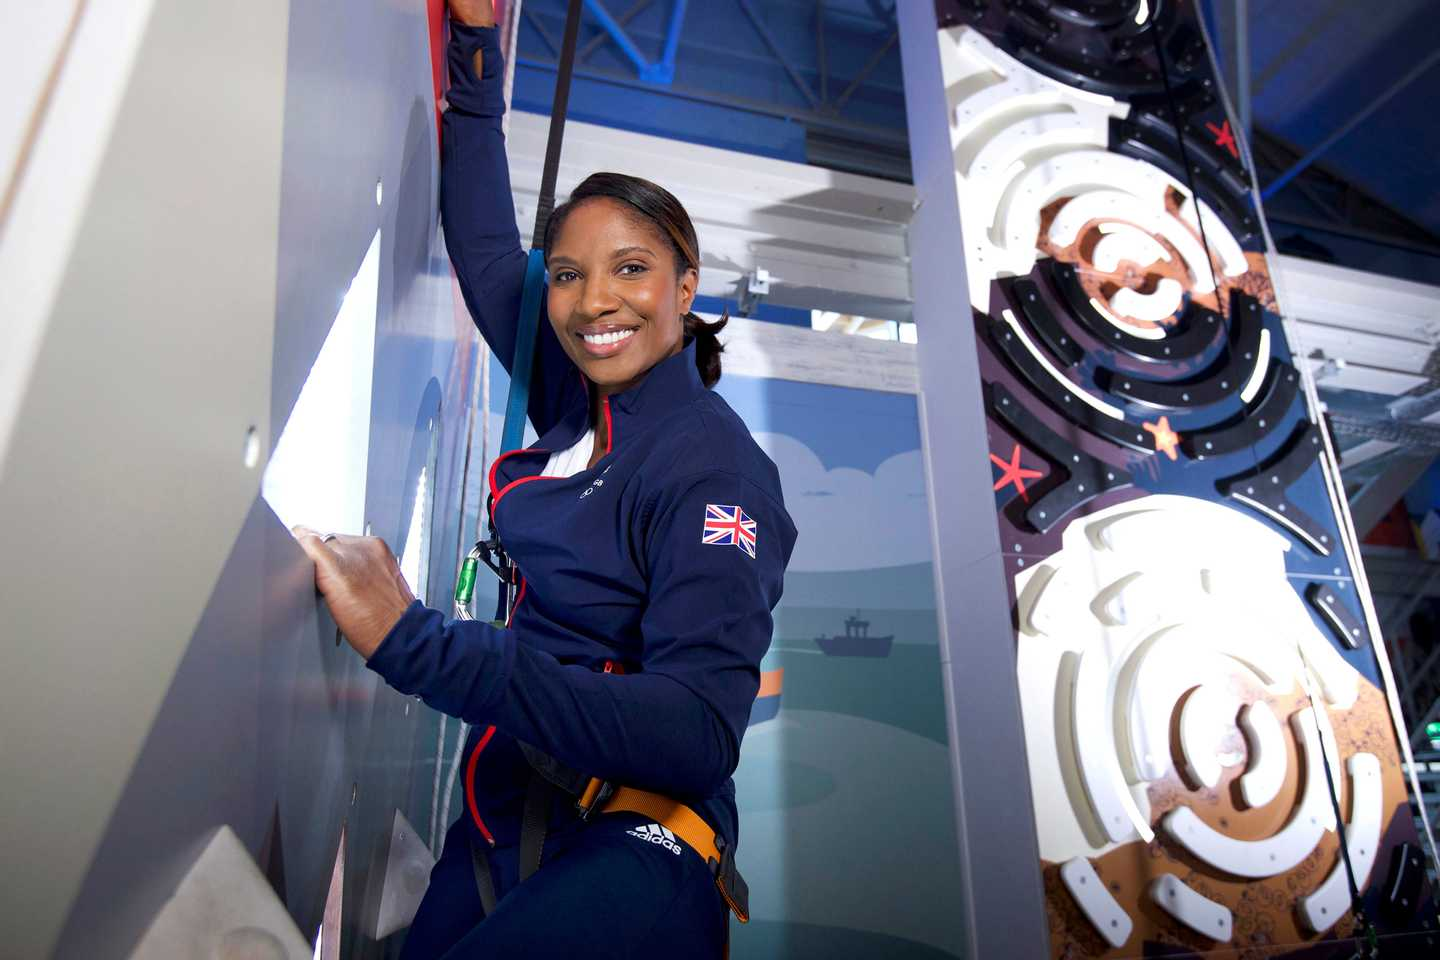 Denise Lewis scaling the Crazy Climber